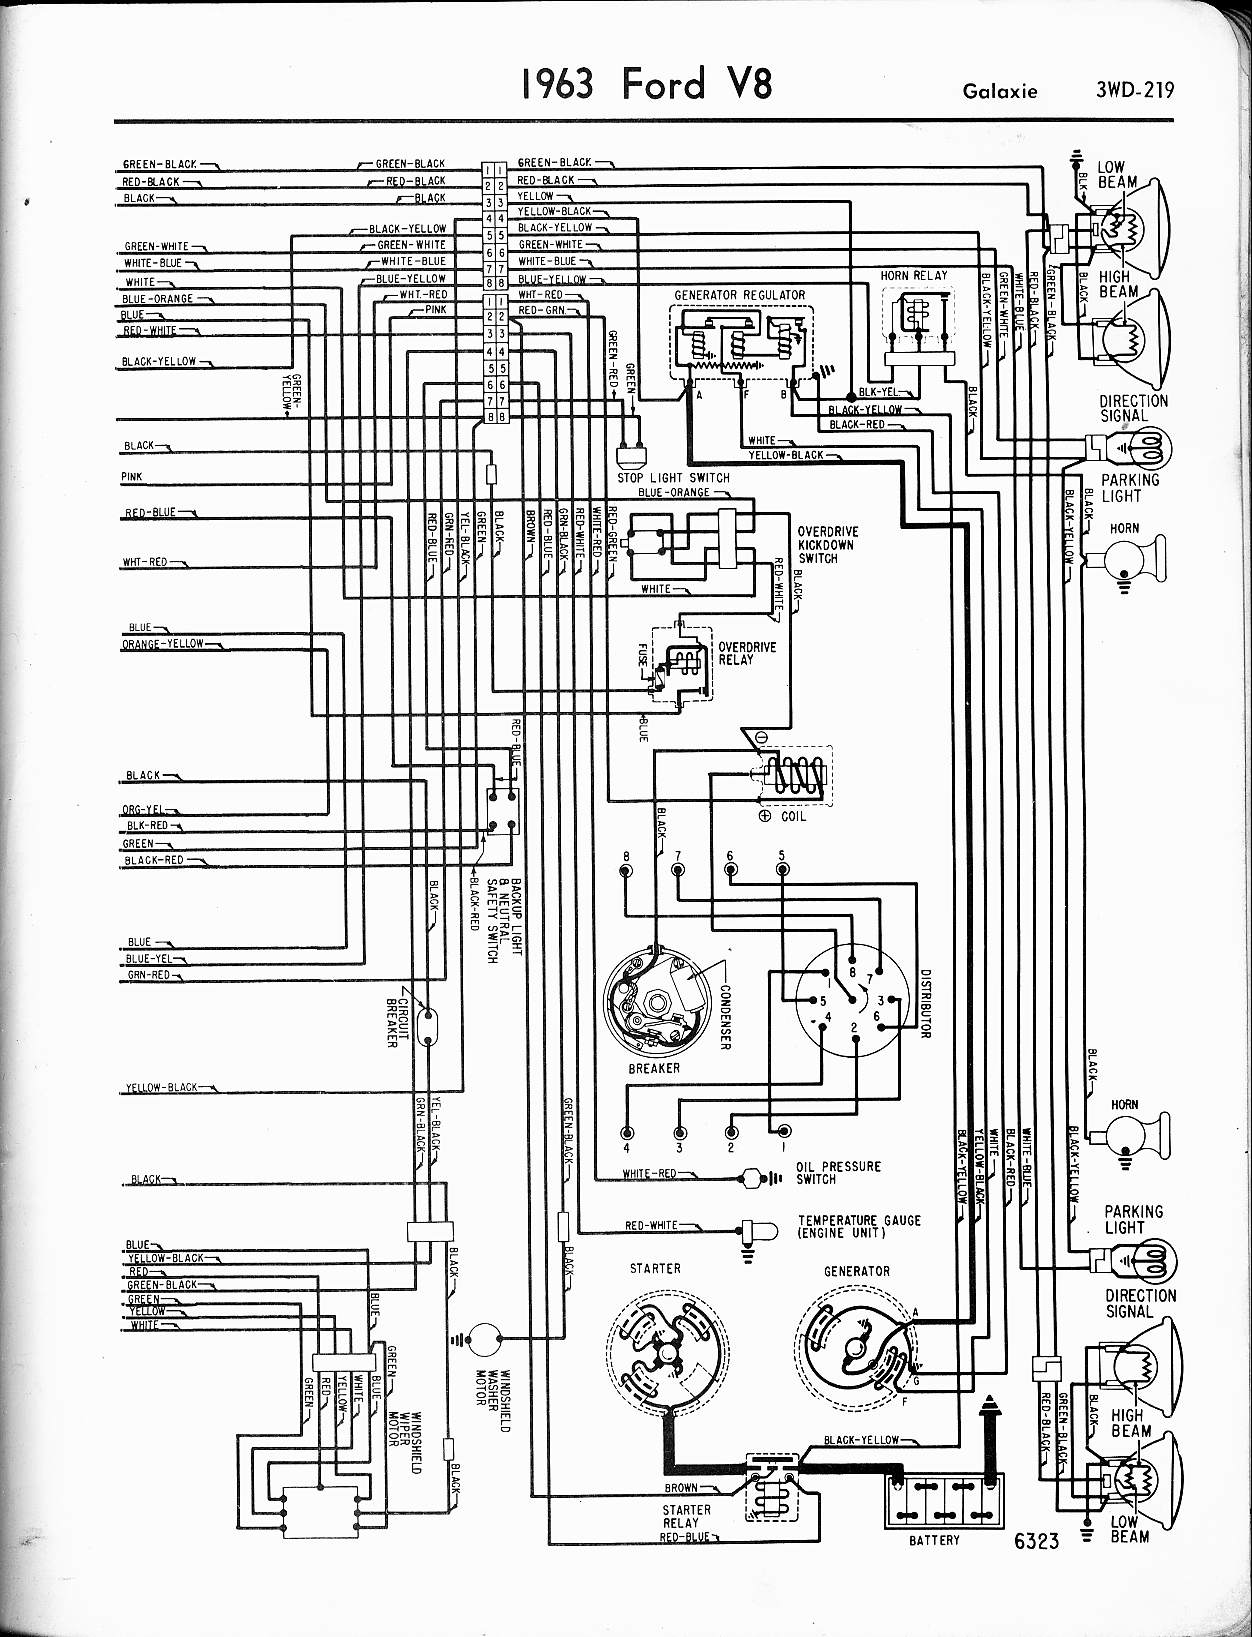 1963 ford wiring diagram online circuit wiring diagram u2022 rh electrobuddha co uk